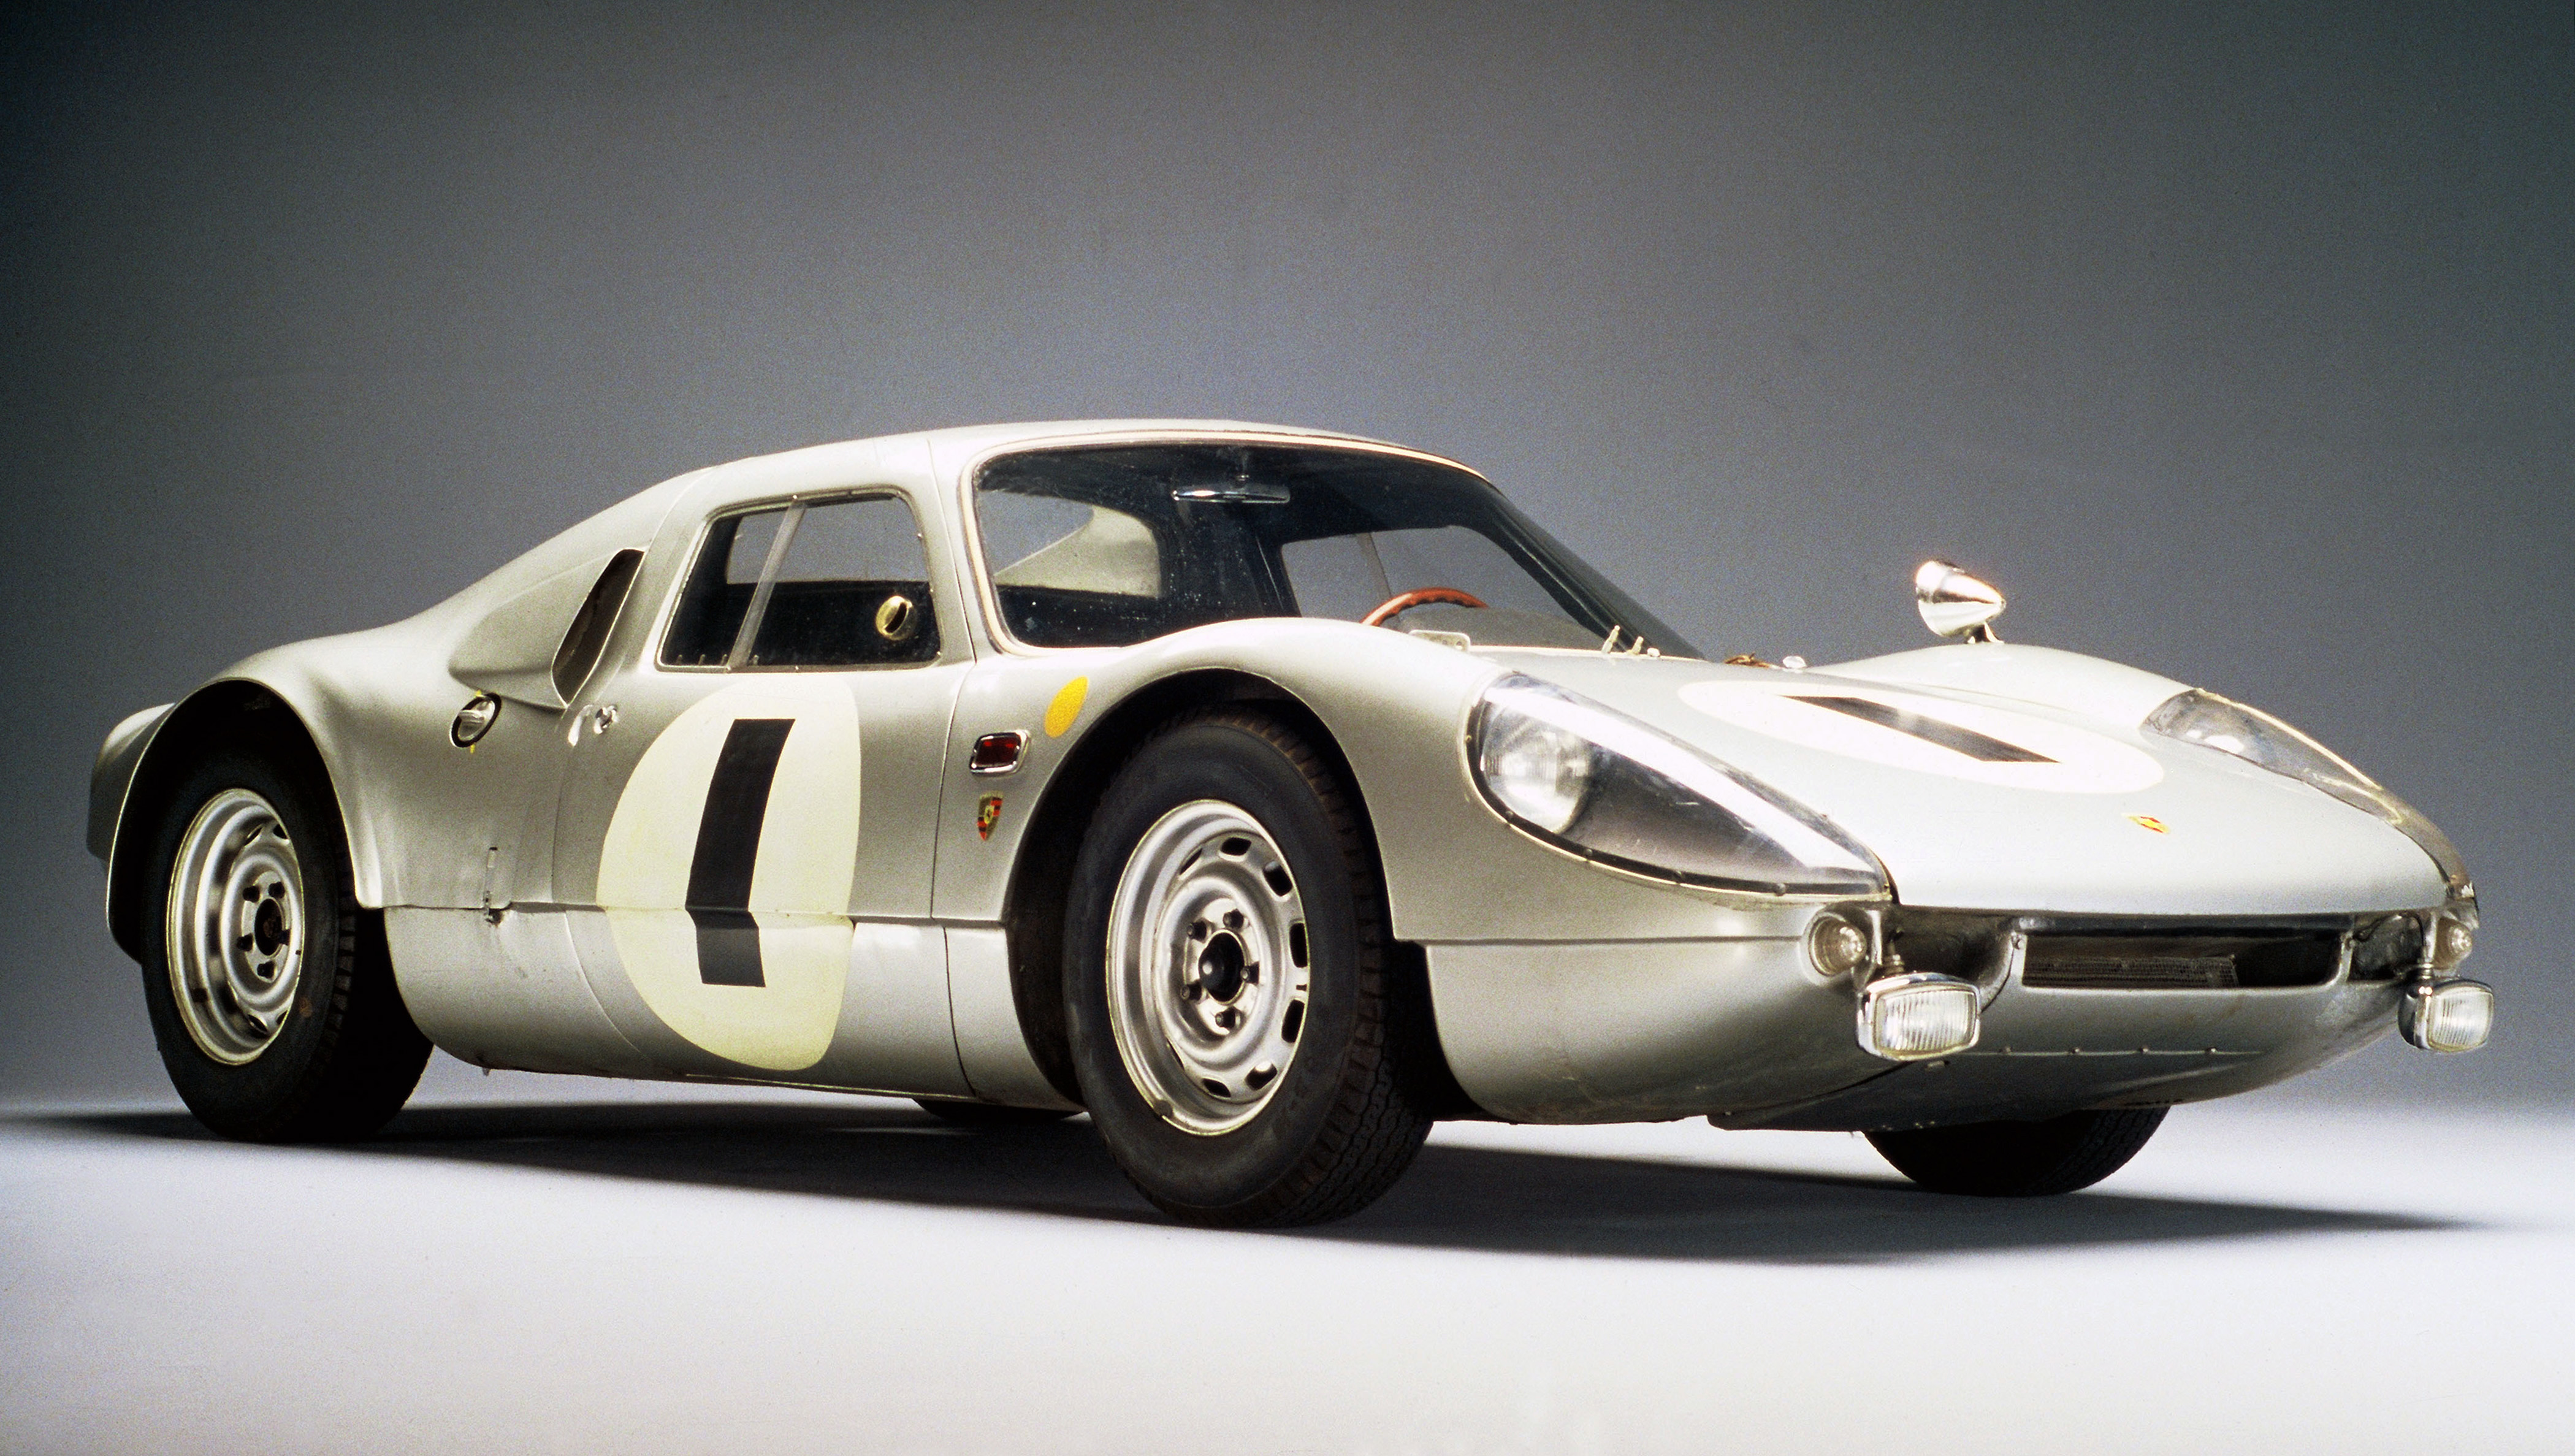 Porsche: the Mid-Engined Legacy - Influx on exotic porsche, martini porsche, silver porsche, joe rogan porsche, best porsche, steve mcqueen's porsche,